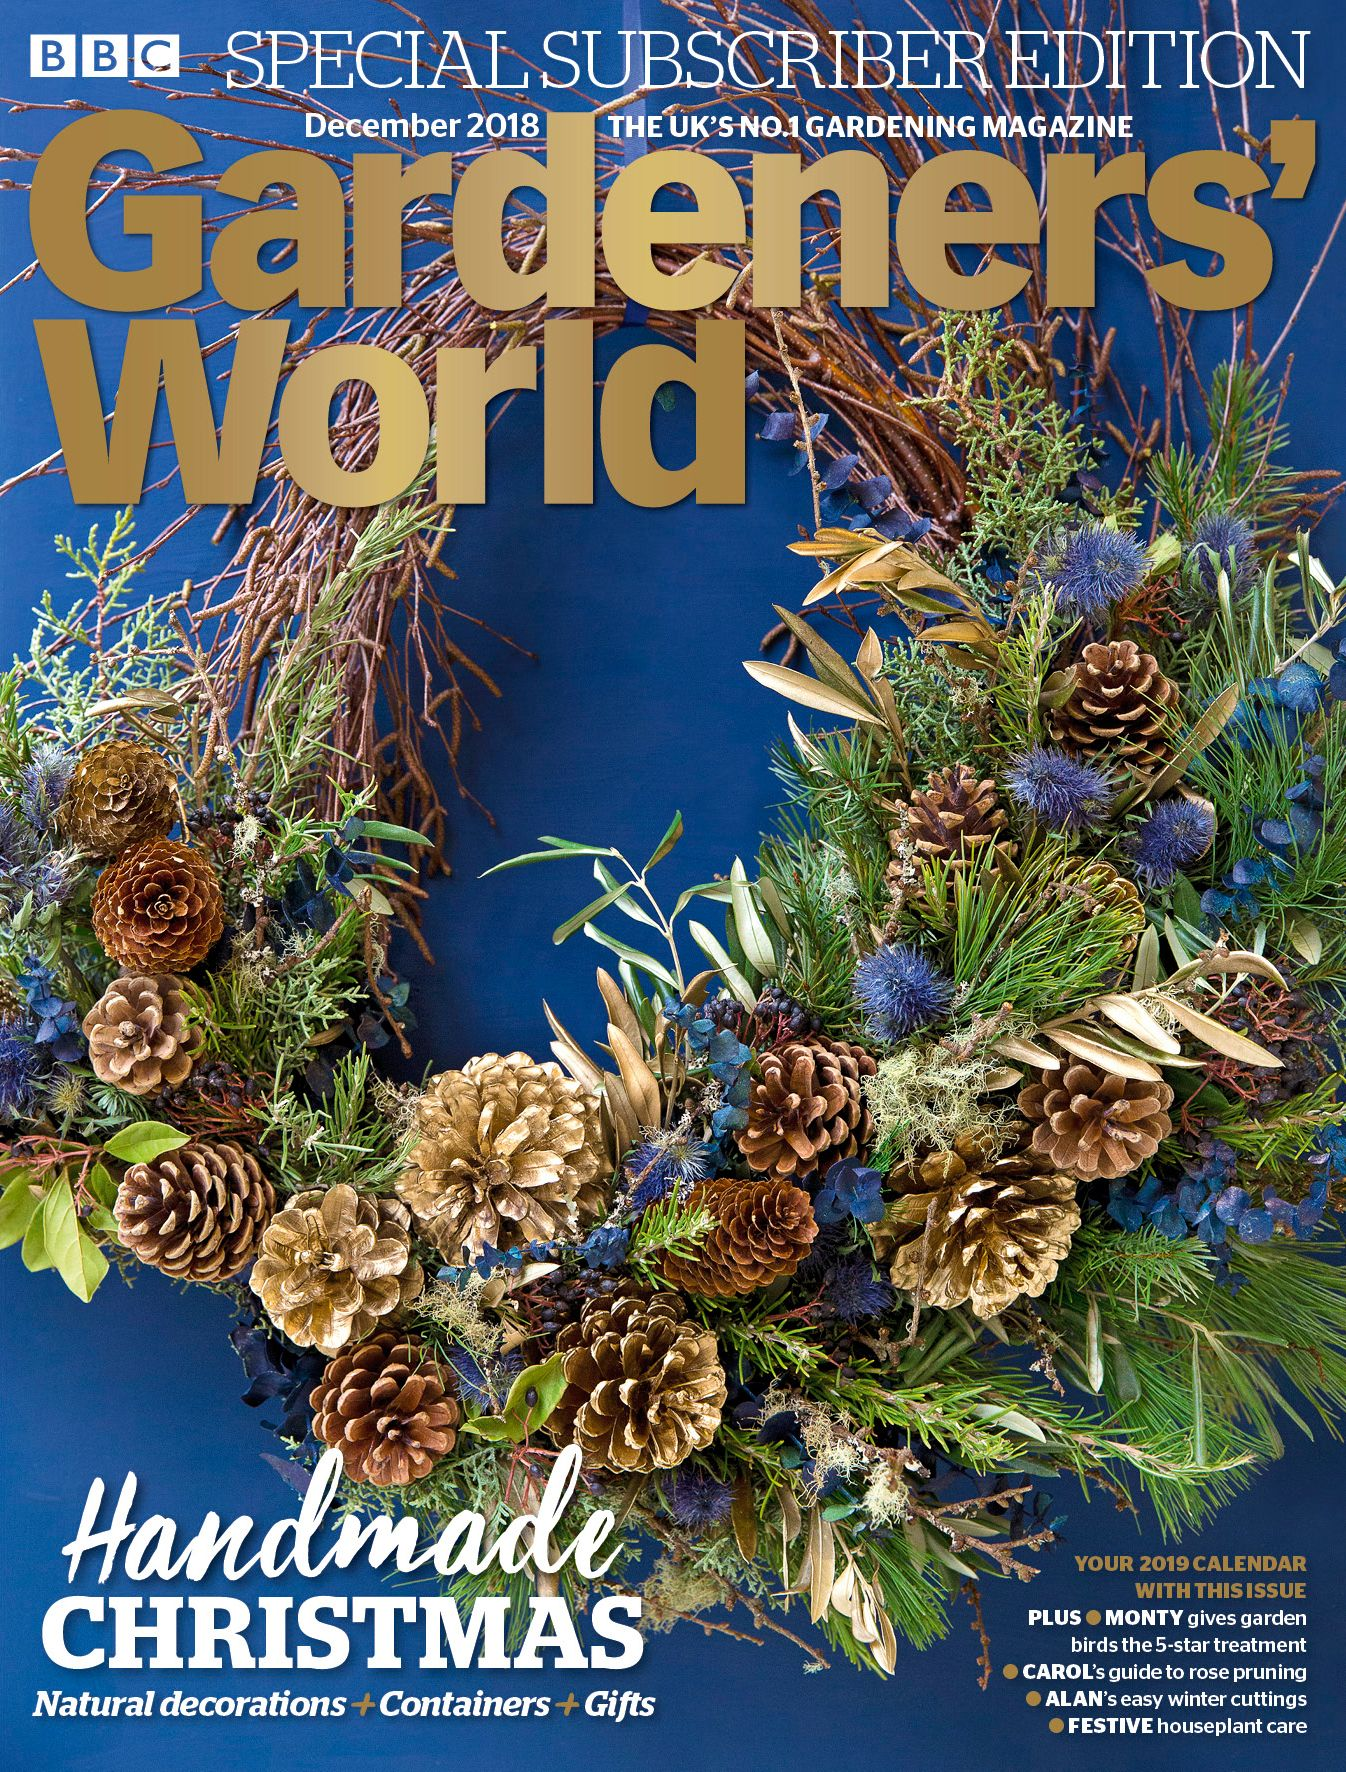 Cover photo Isabelle Palmer s handmade wreath by Sarah Cuttle